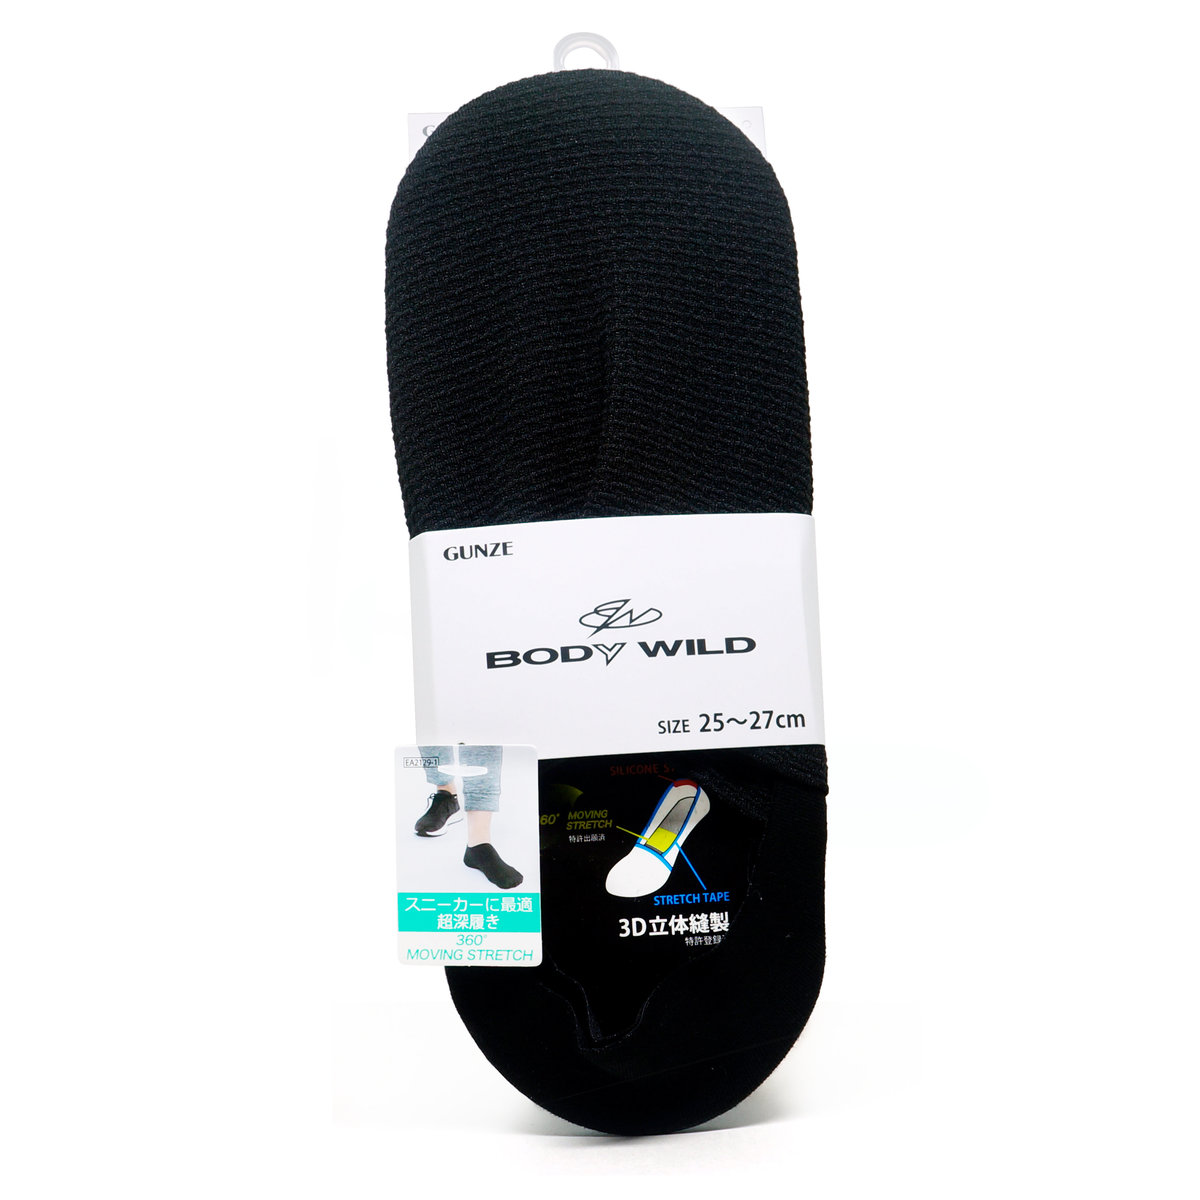 BDJ002 Men's anti-off ultra-deep boat socks 026 Black Size 25-27 (4547847495478)